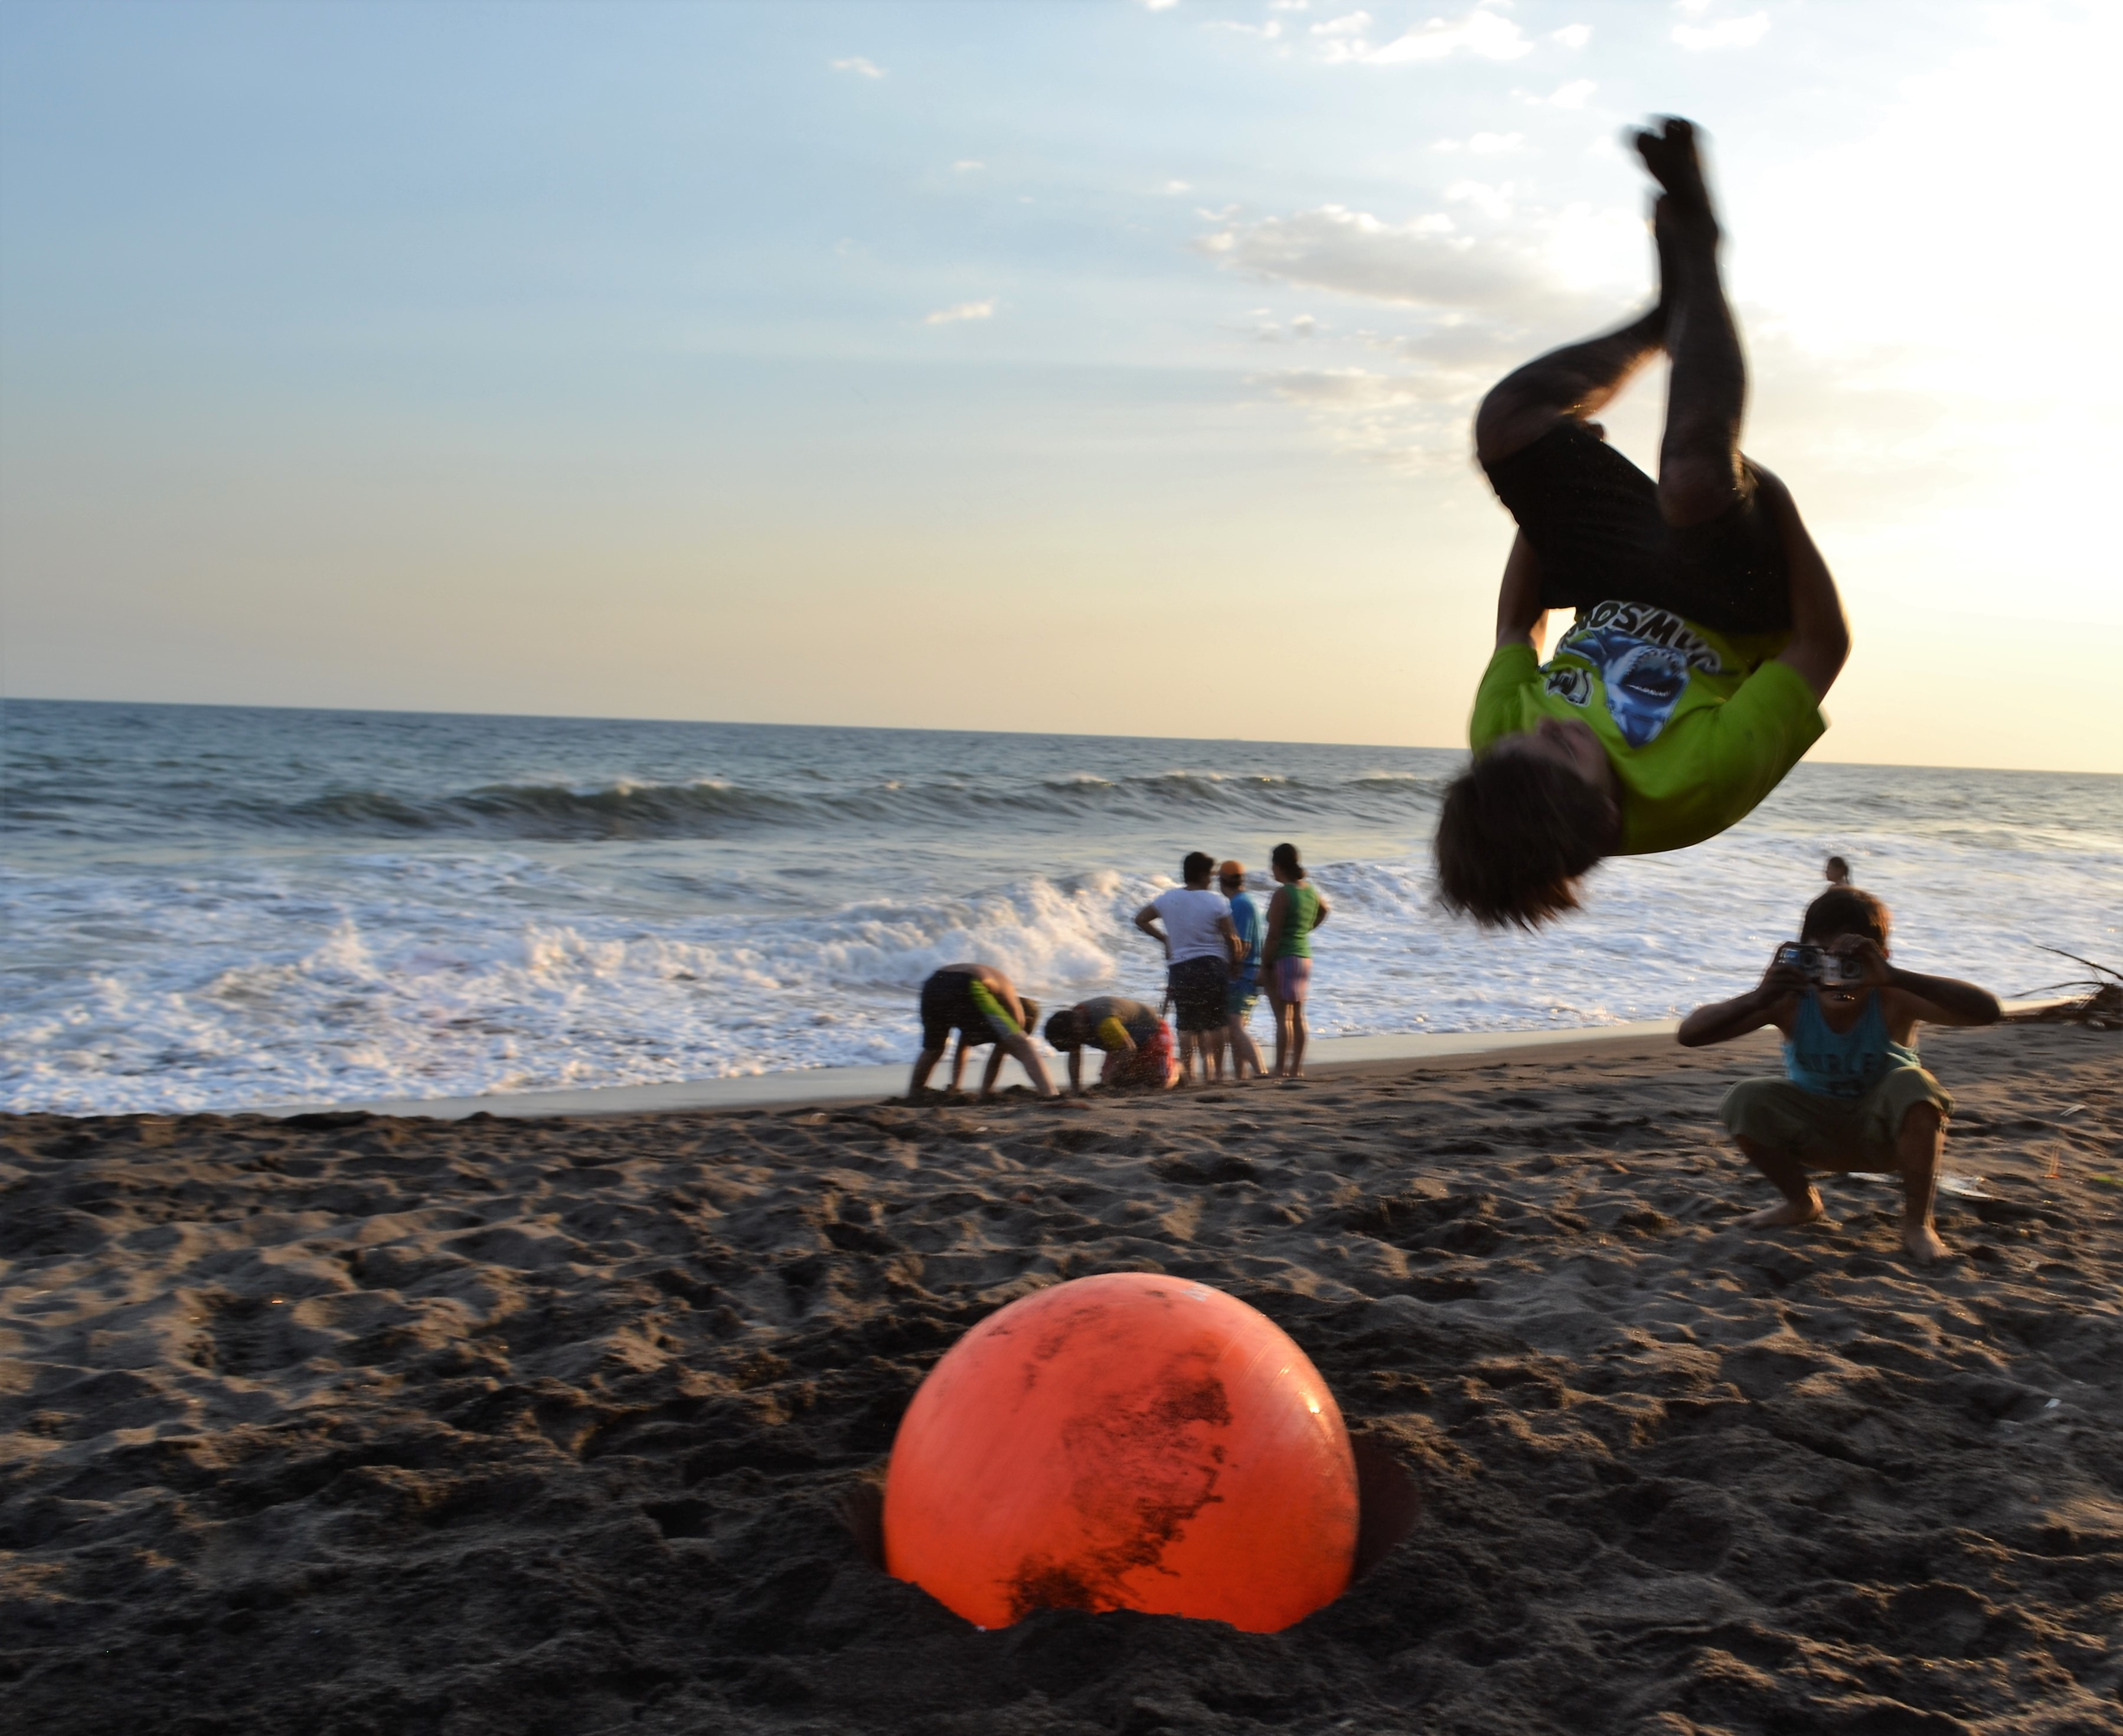 tricks and flips at the beach, beach house in guatemala, beach birthday party